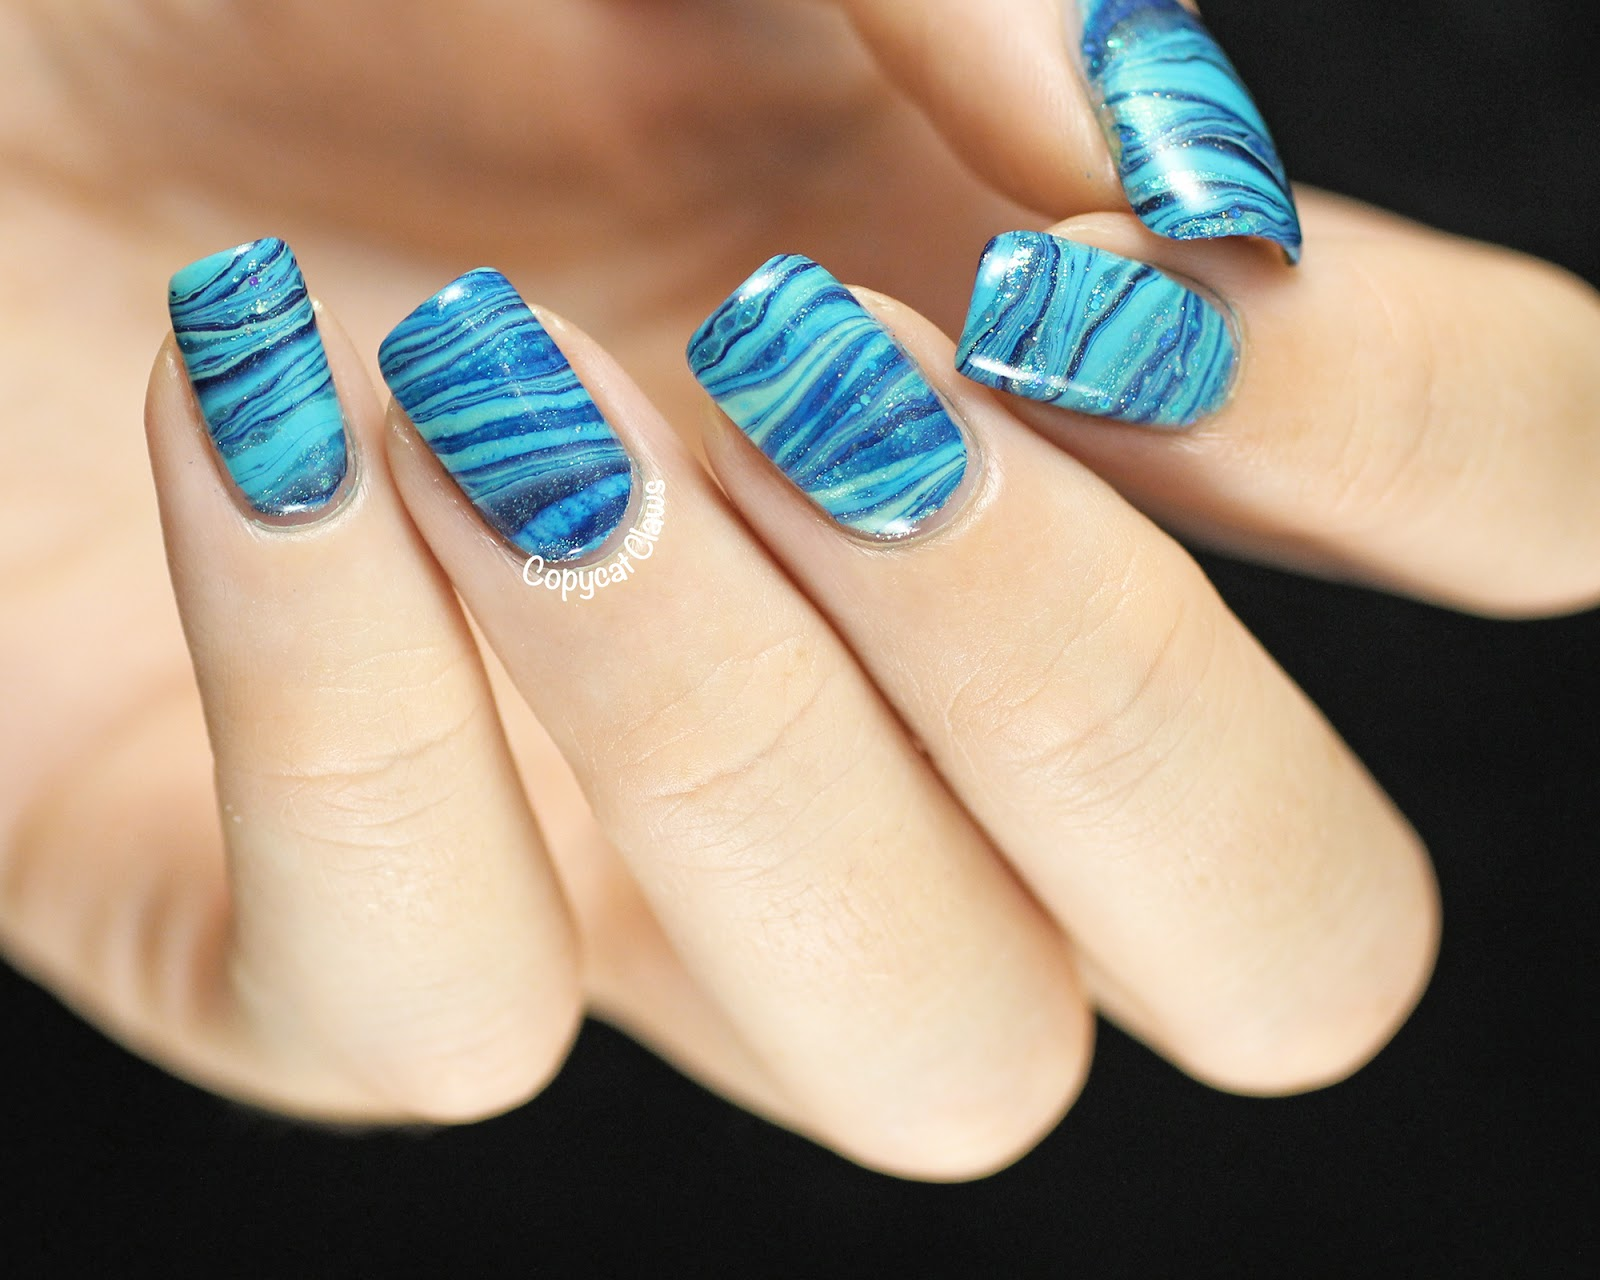 Copycat claws 31dc2014 day 20 blue water marble nail art 31dc2014 day 20 blue water marble nail art prinsesfo Images